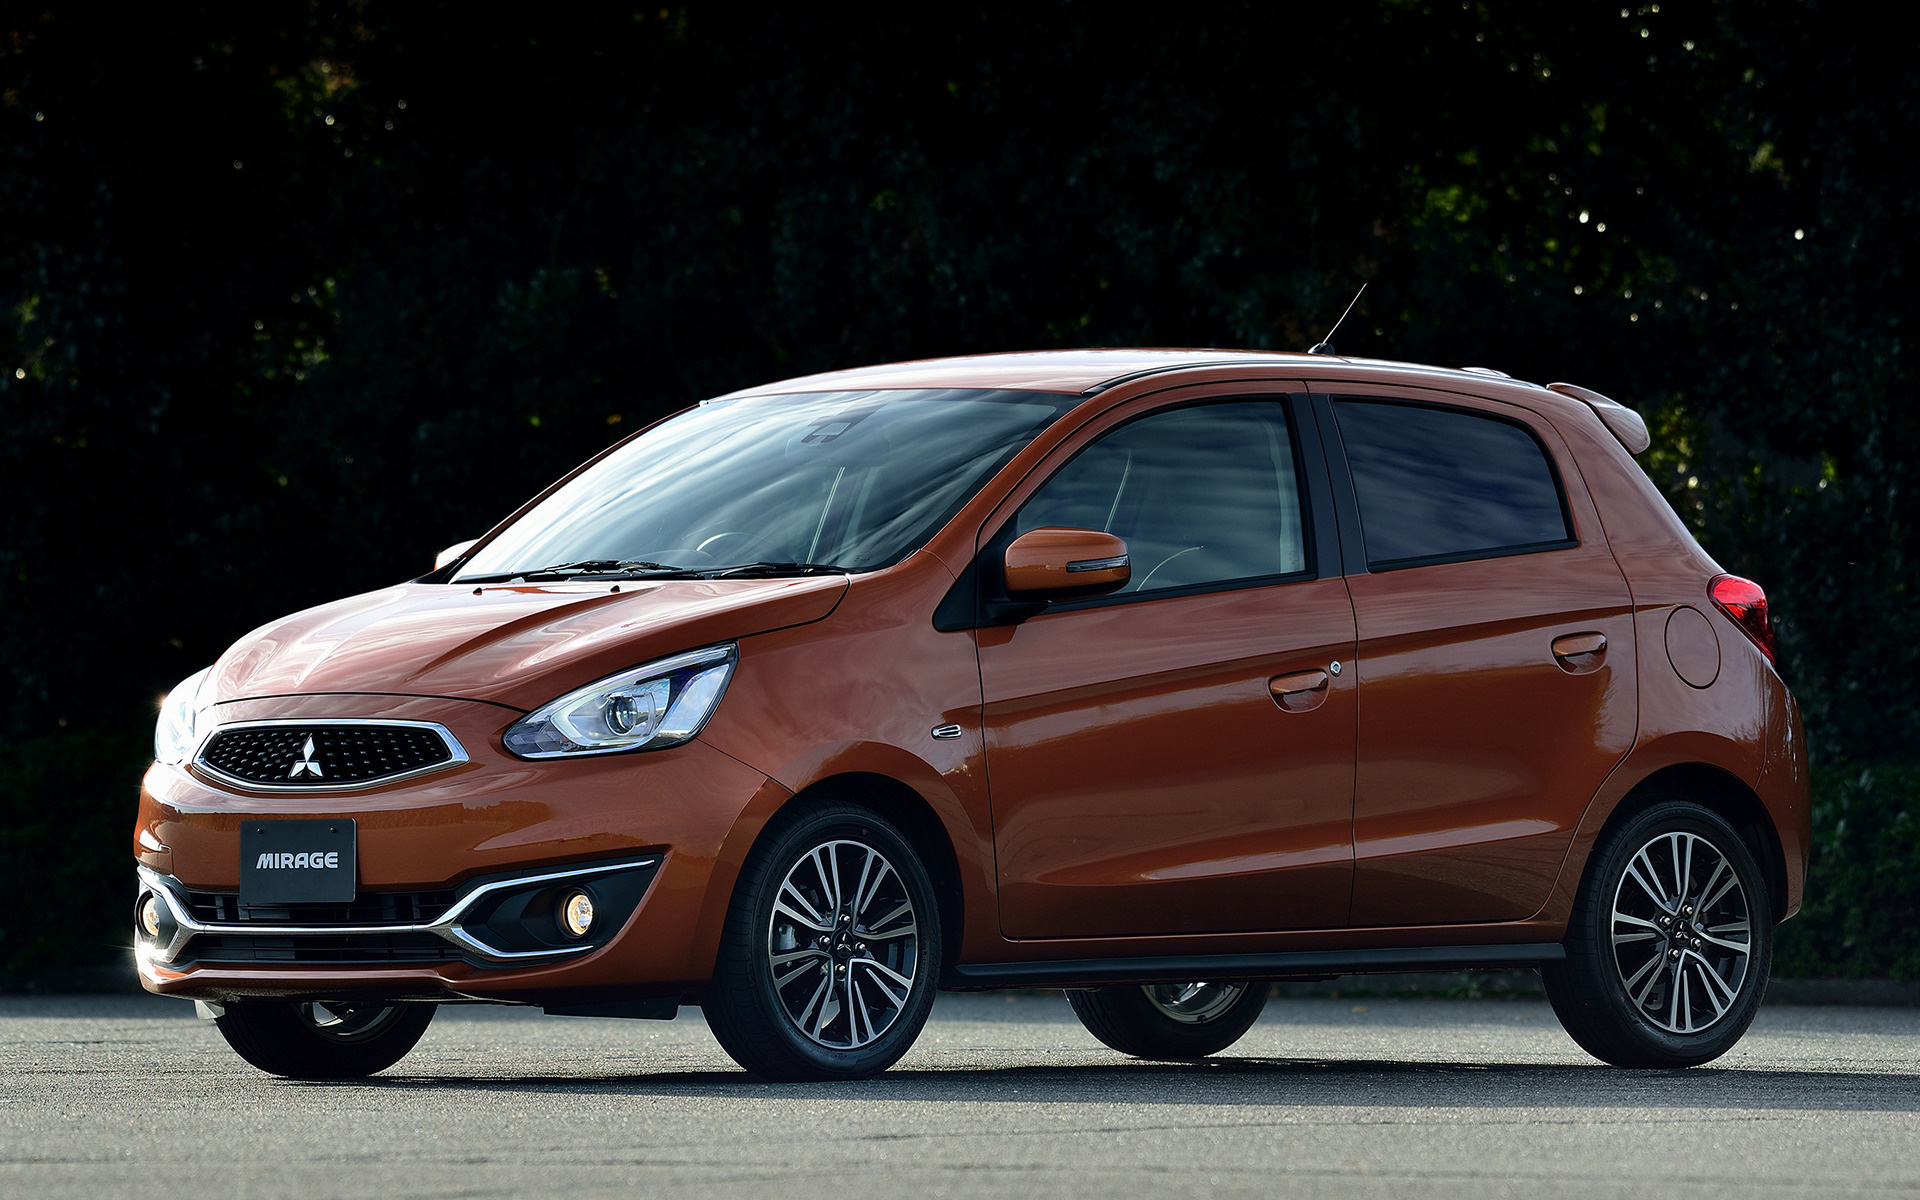 Mitsubishi Mirage (2016) Wallpapers and HD Images - Car Pixel